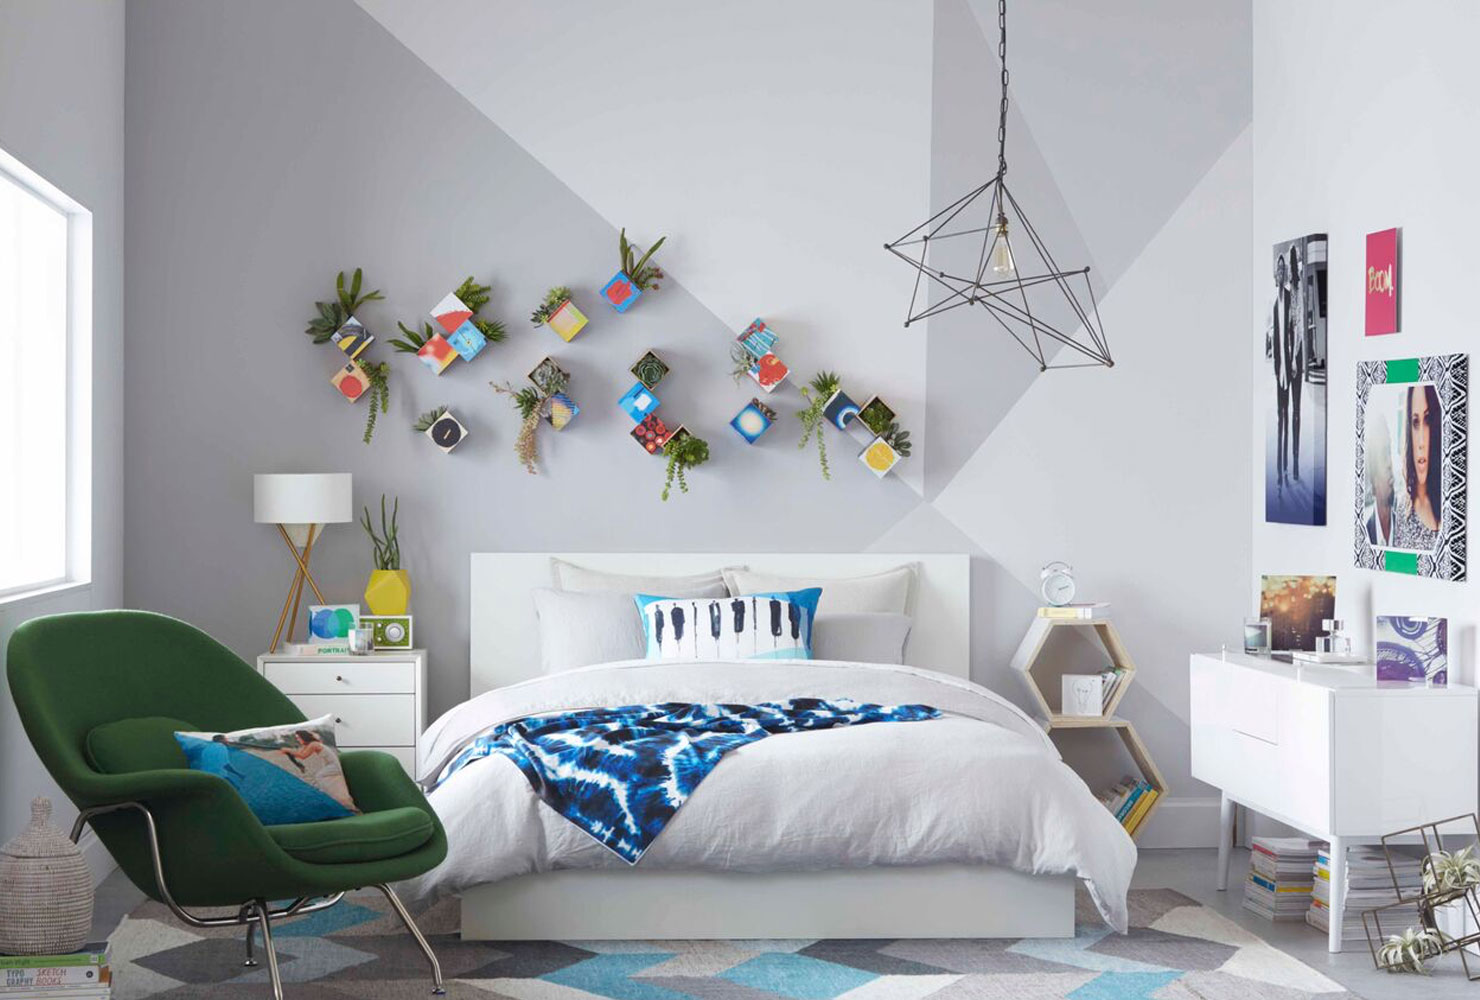 24 DIY Bedroom Decor Ideas To Inspire You (With Printables ... on Bedroom Wall Decor  id=15035